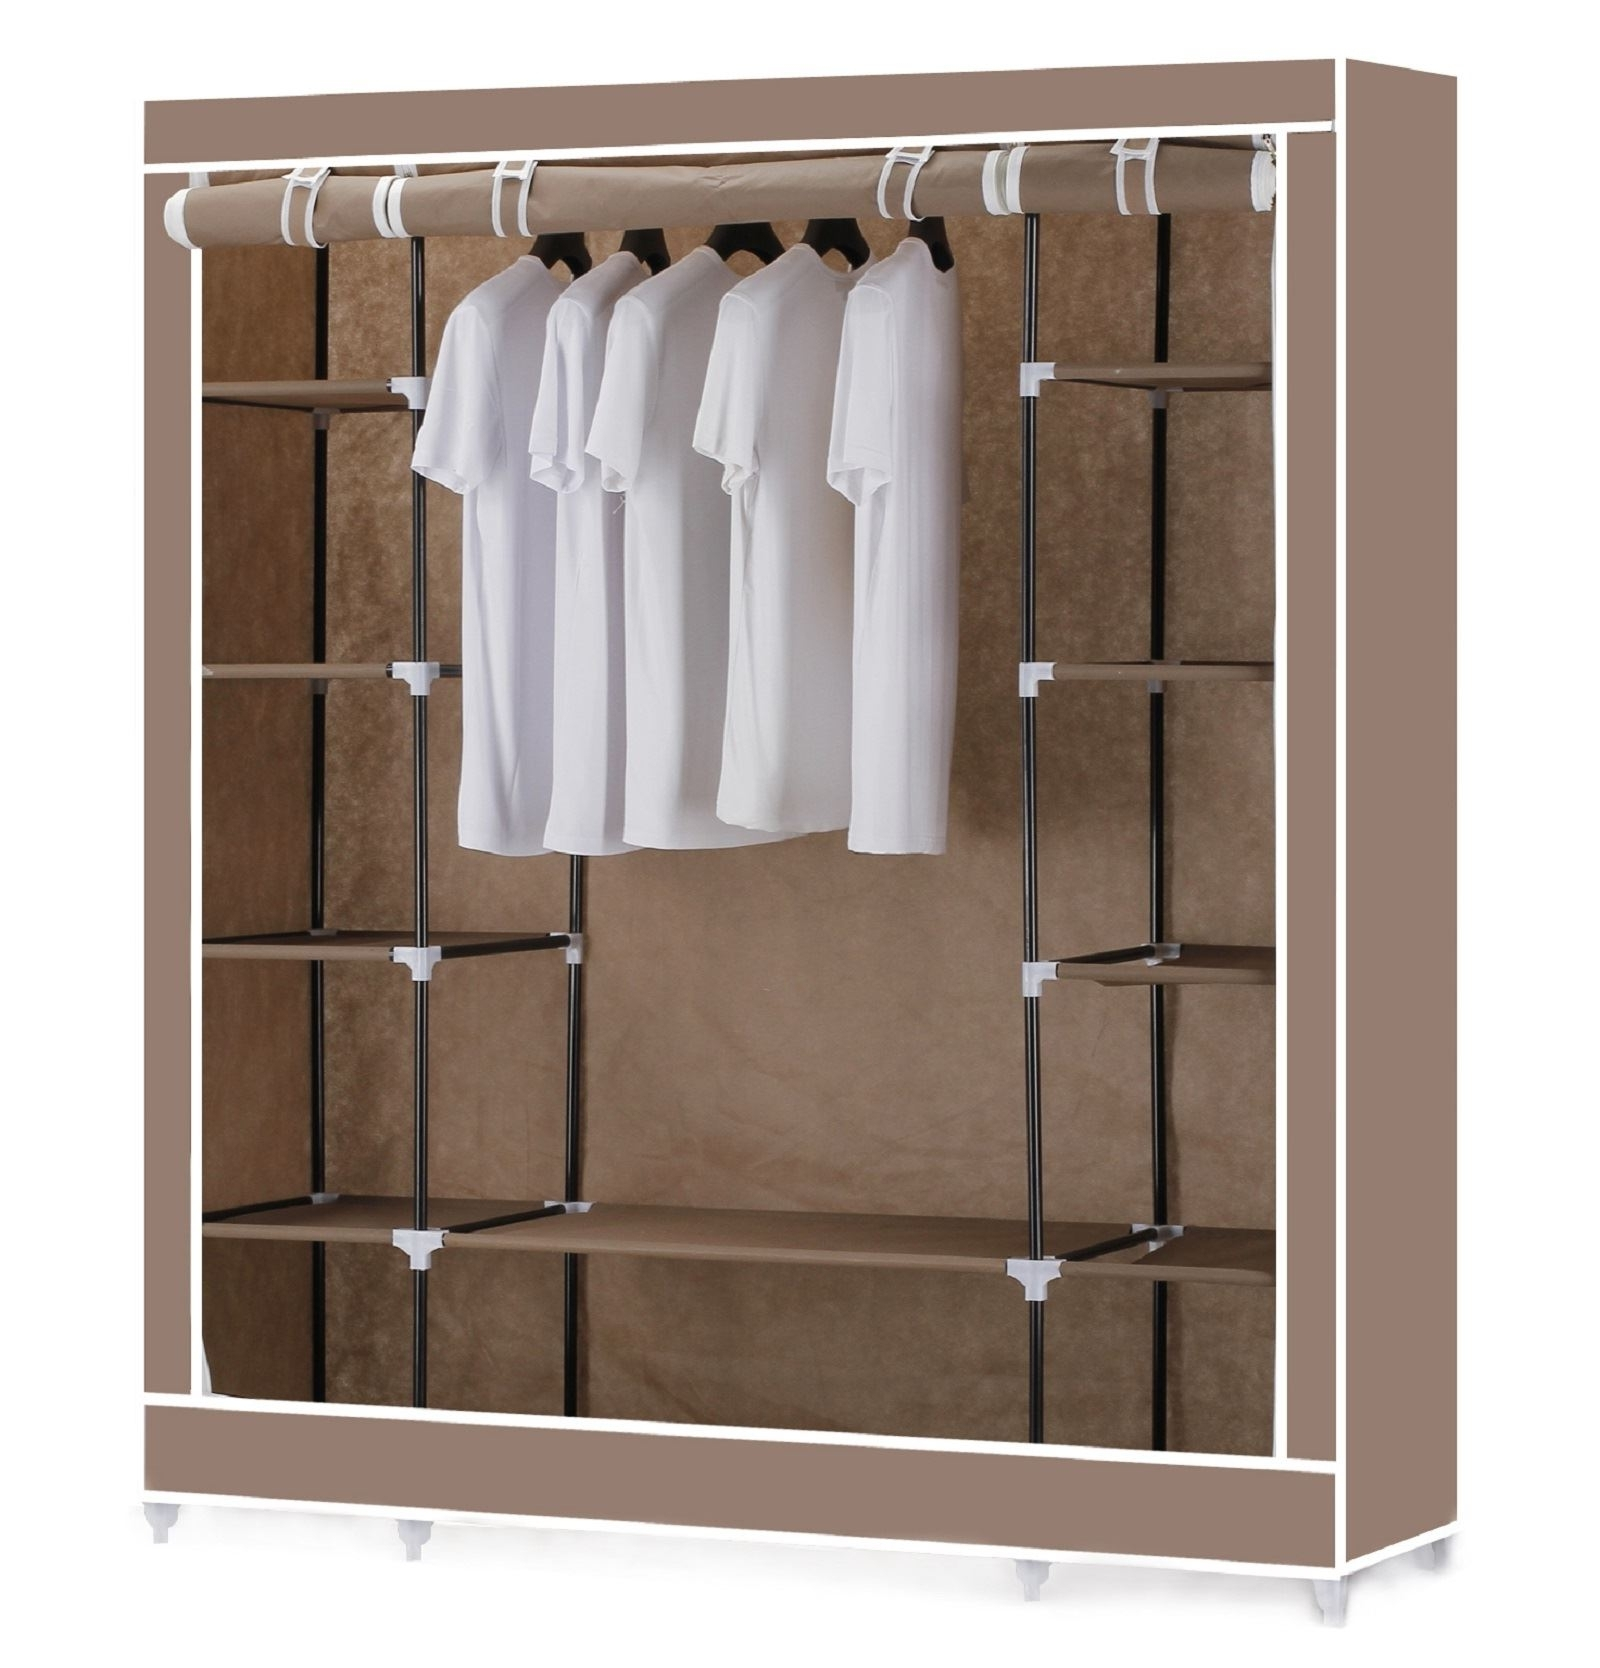 Double Hanging Wardrobe 2019 Best Of Double Hanging Rail For Wardrobes